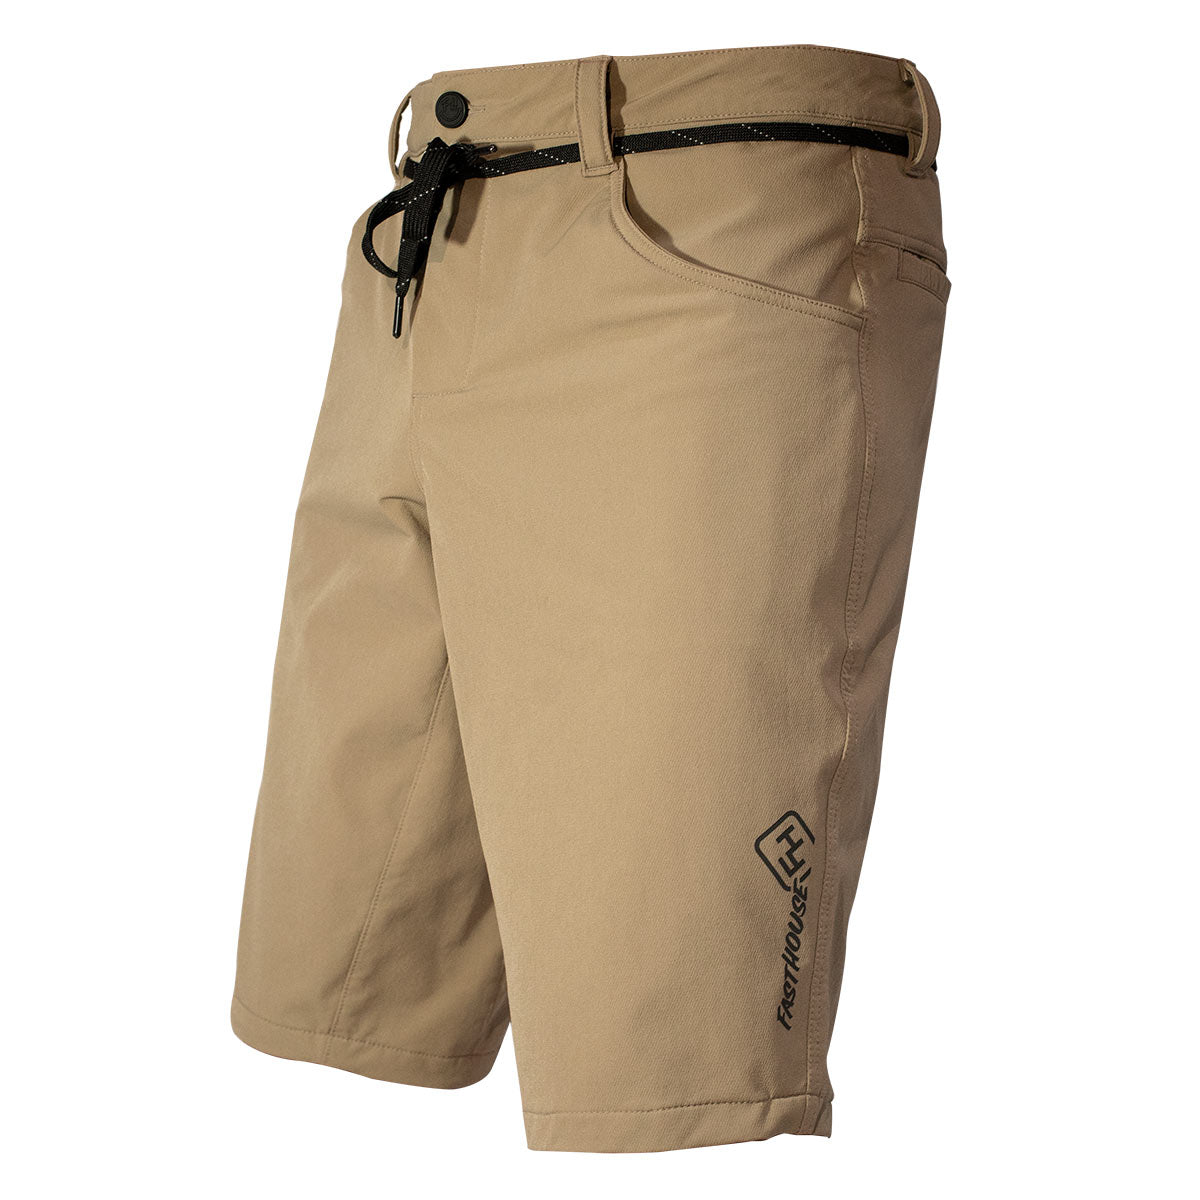 Kicker Short - Khaki